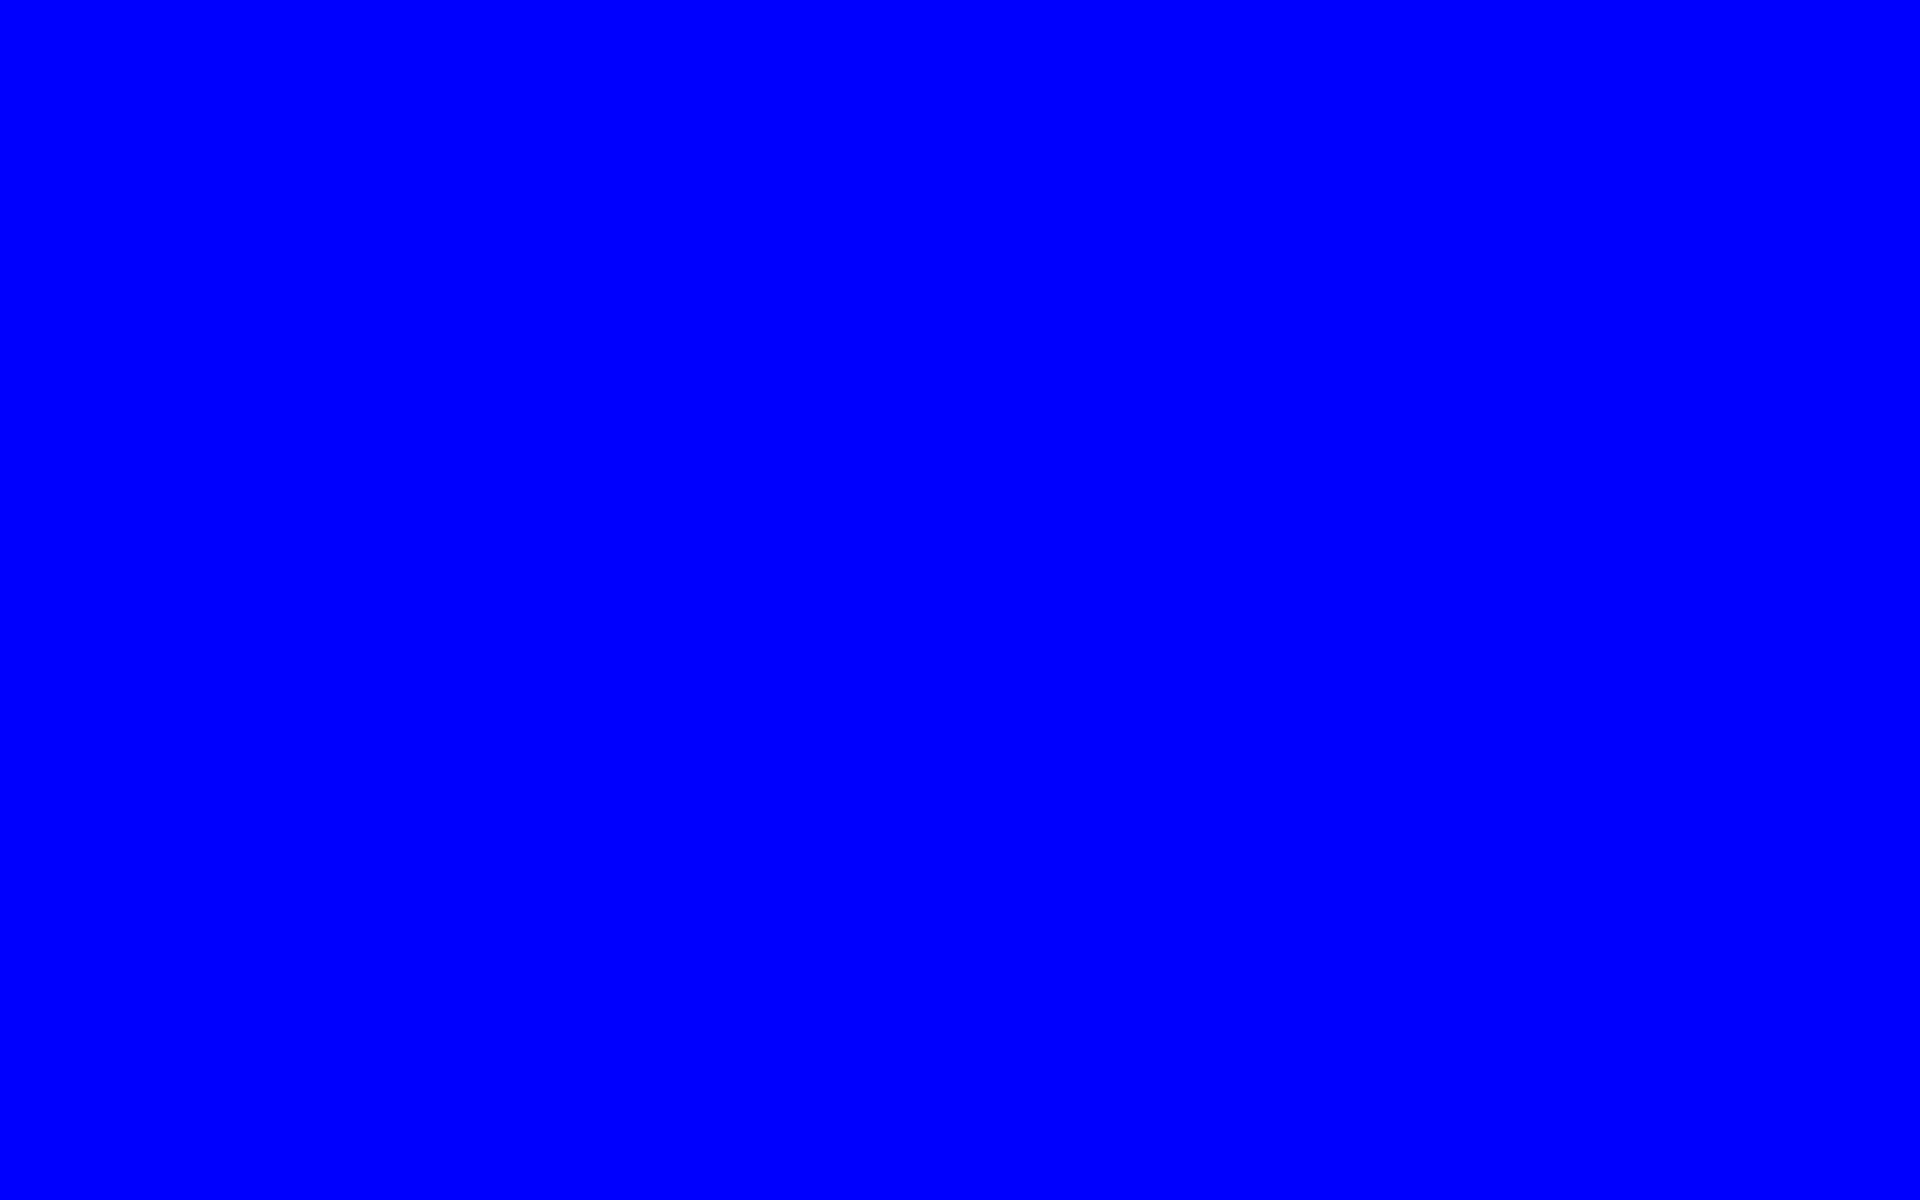 1920x1200 Blue Solid Color Background